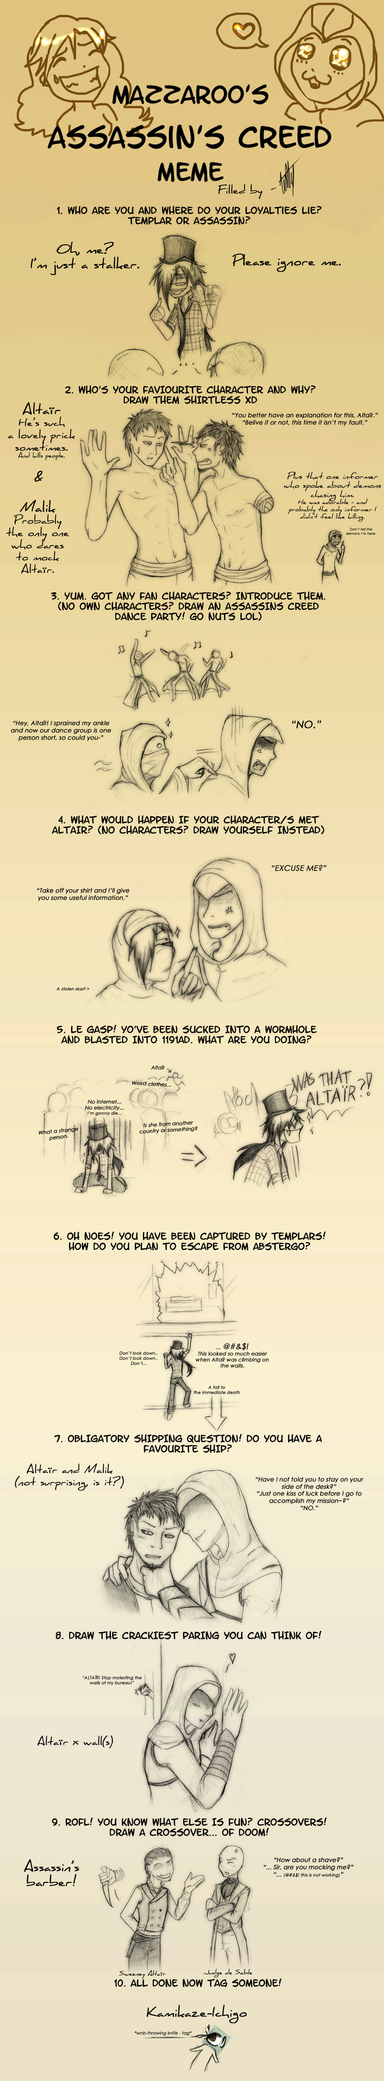 Assassin's Creed meme by K-Kit